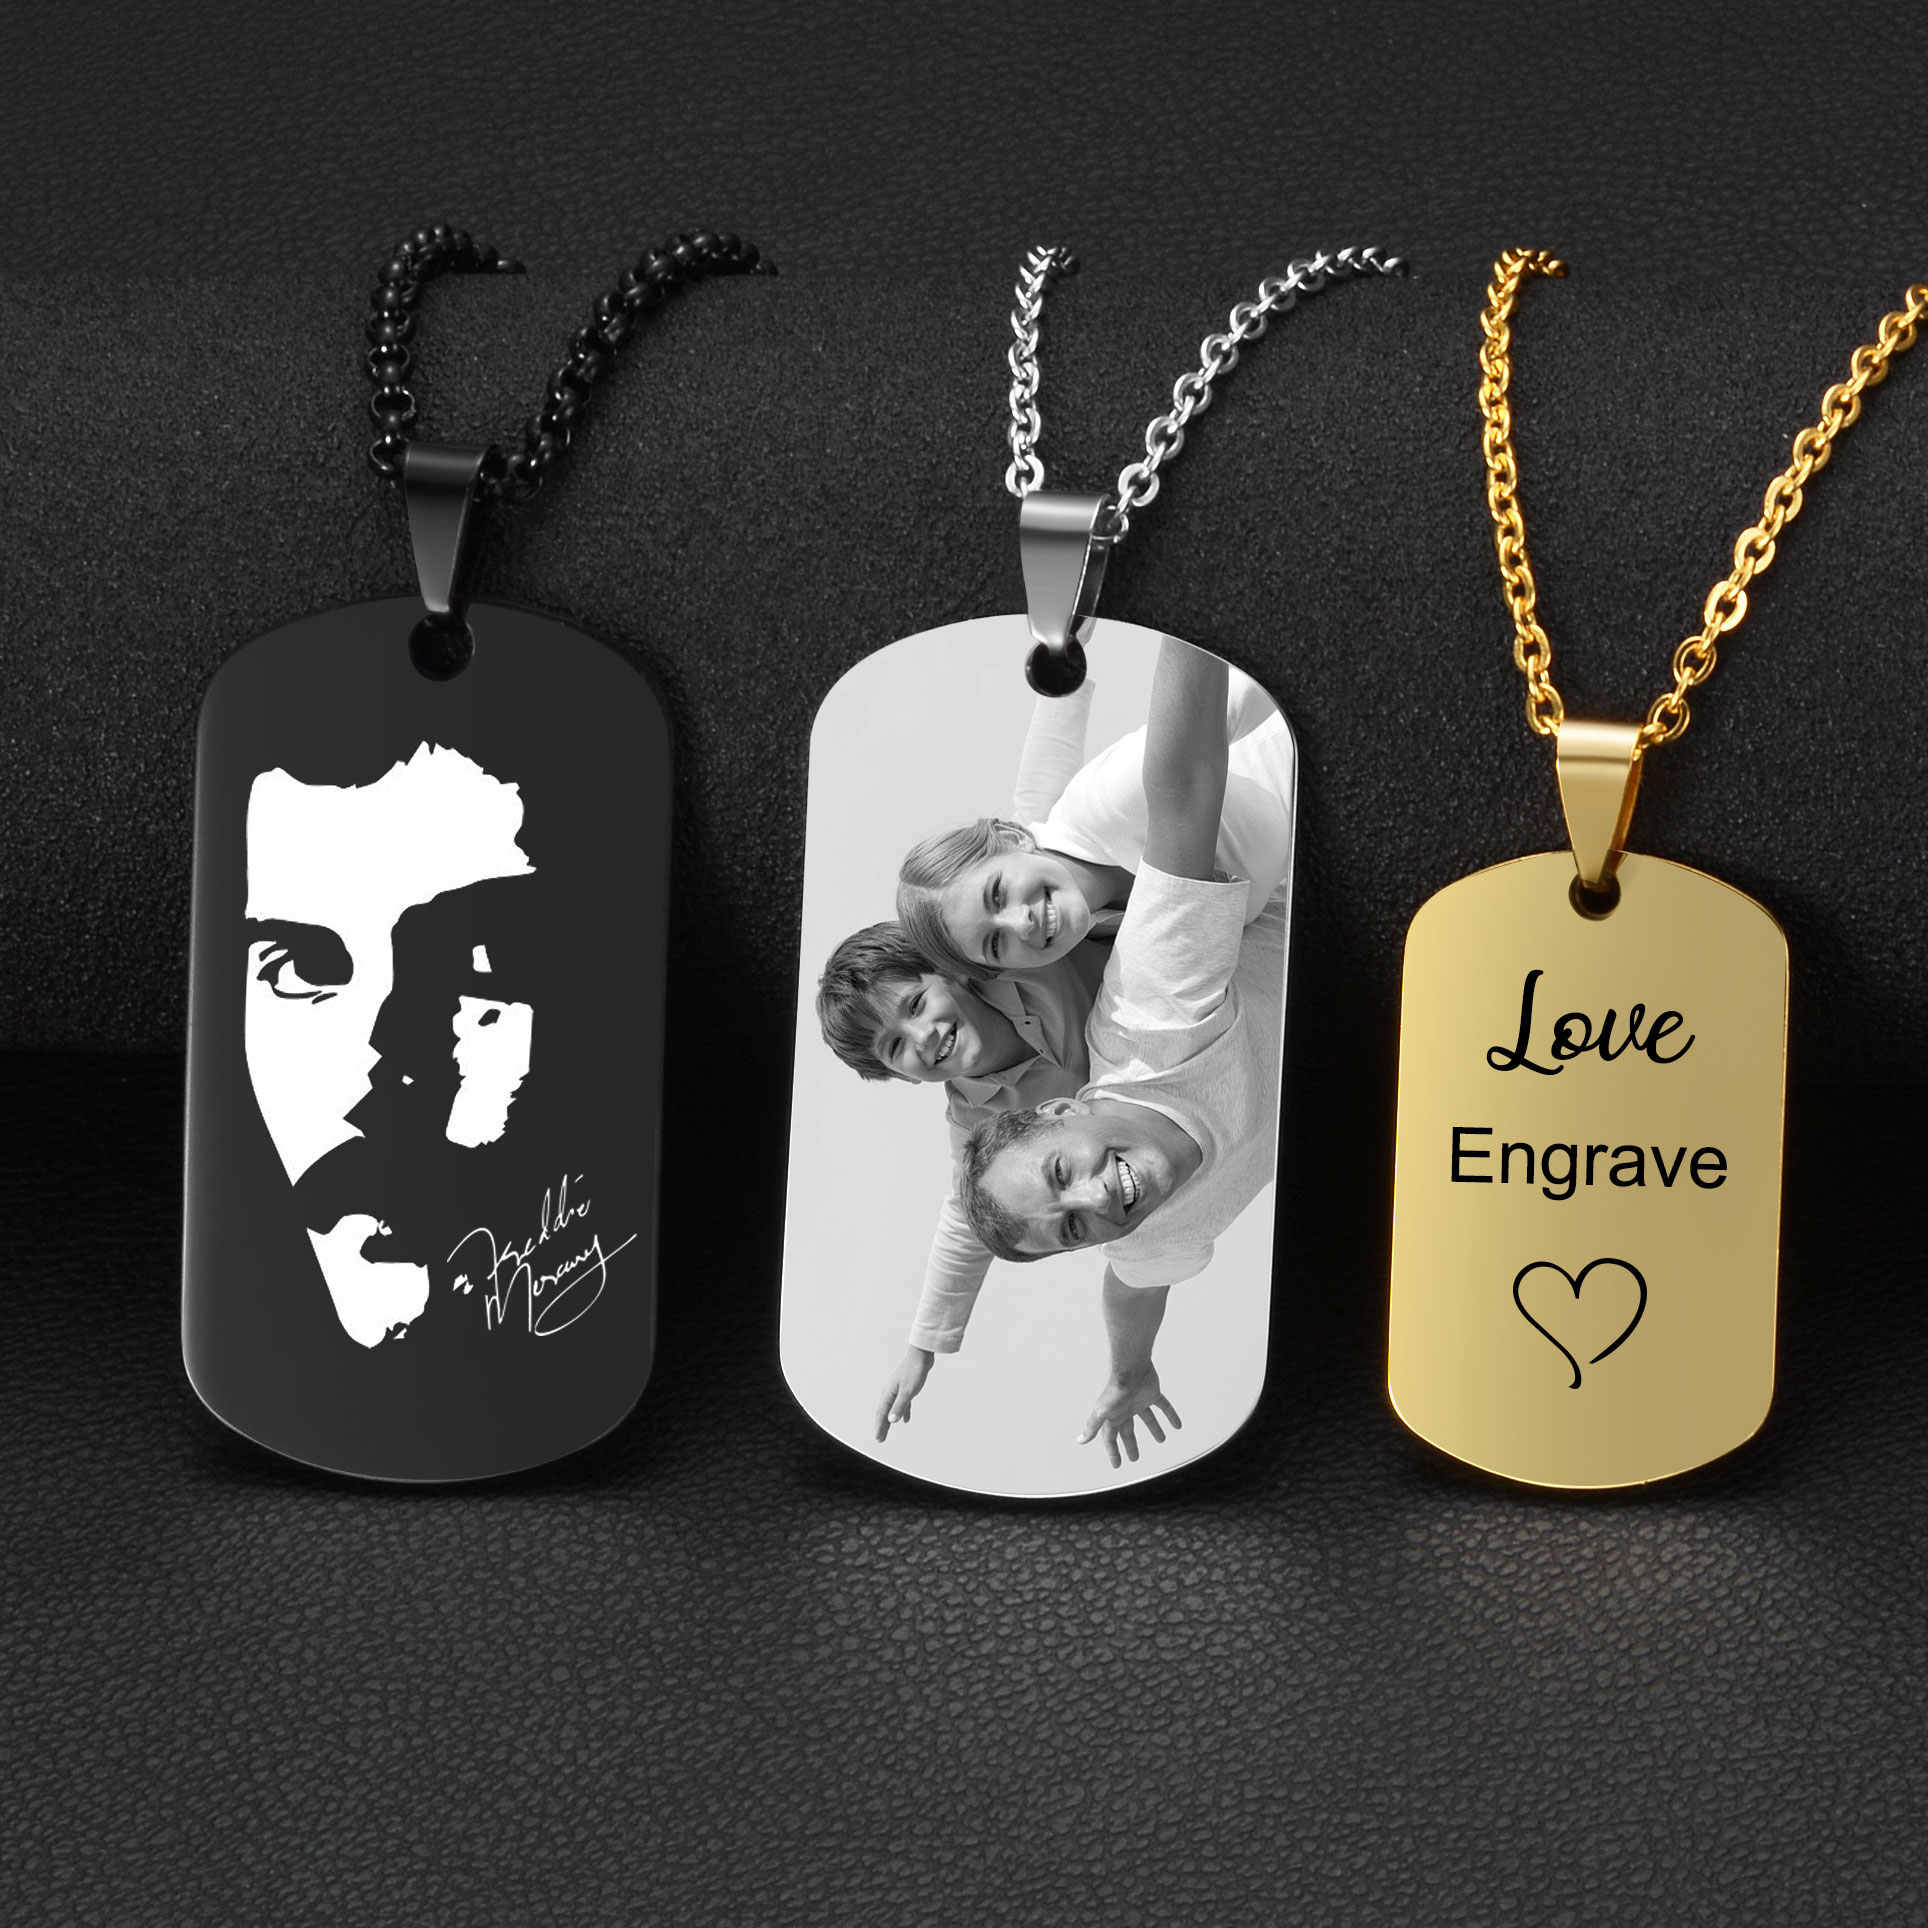 4 Colors Stainless Steel Custom Engraved Necklace Dog Army Tag Necklaces Personalized Name ID Memorial Photo Pendants Jewelry